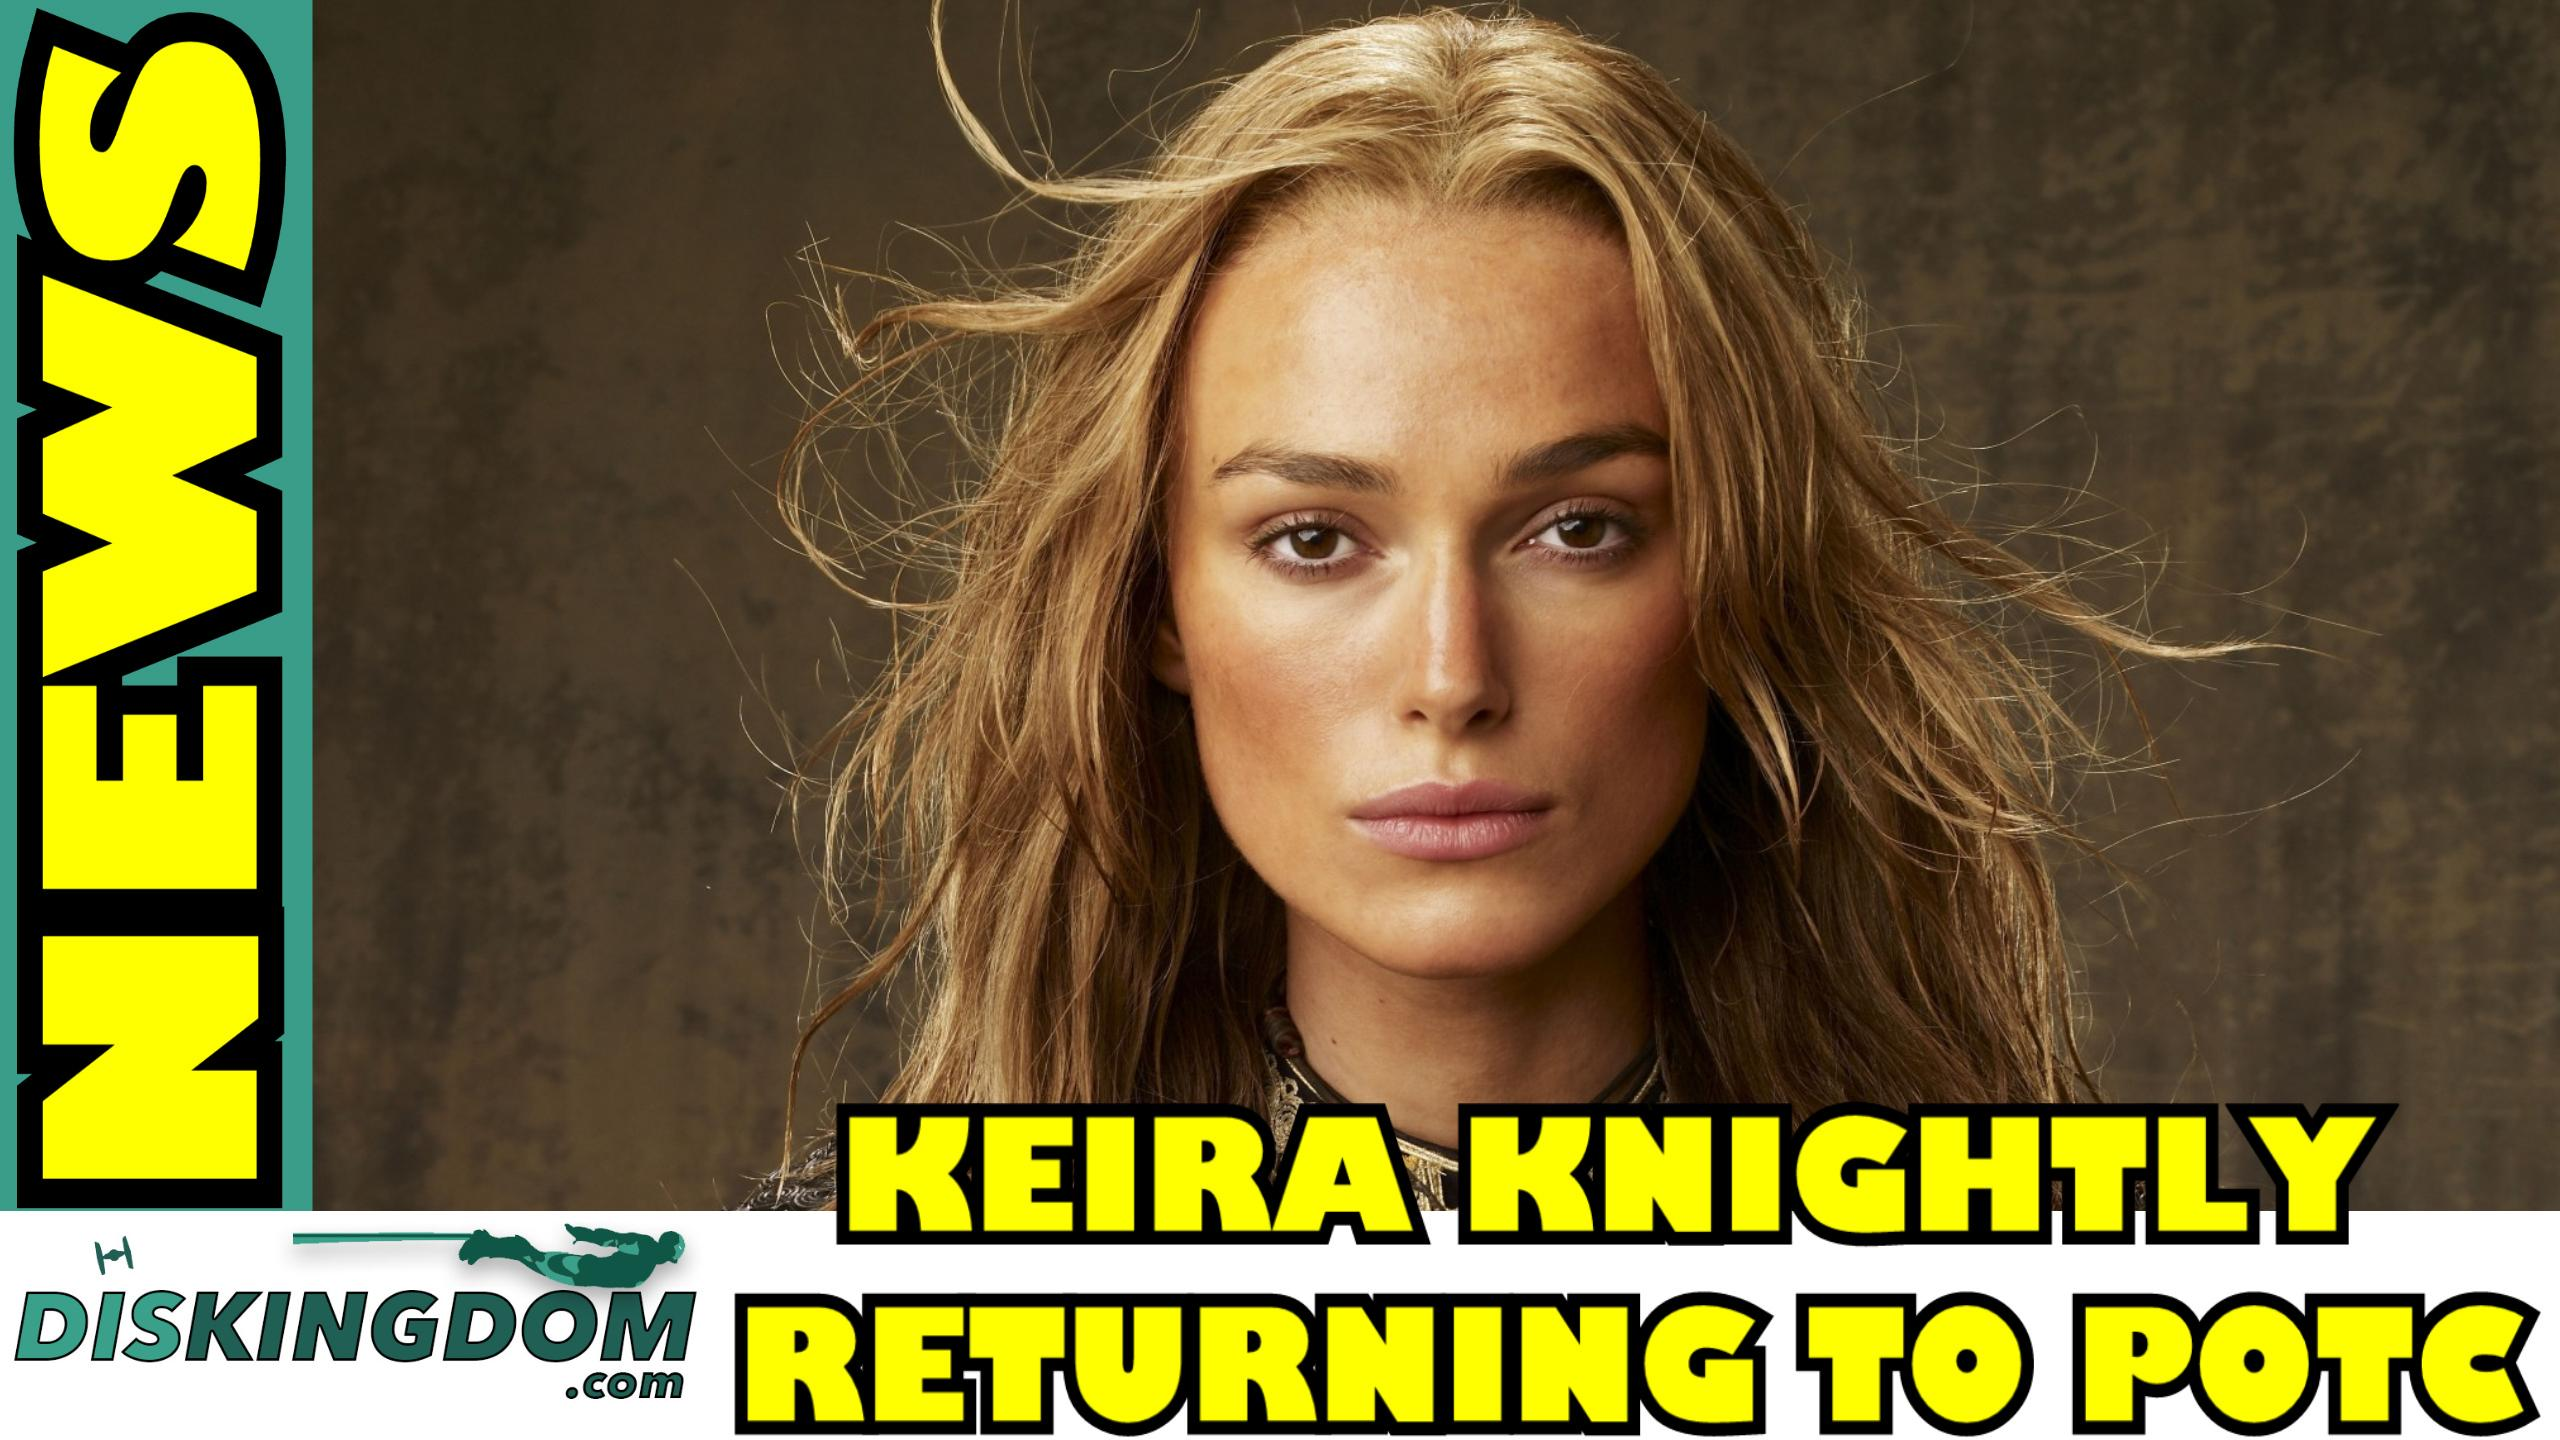 Keira Knightly Returning To Pirates Of The Caribbean  | DK Disney News